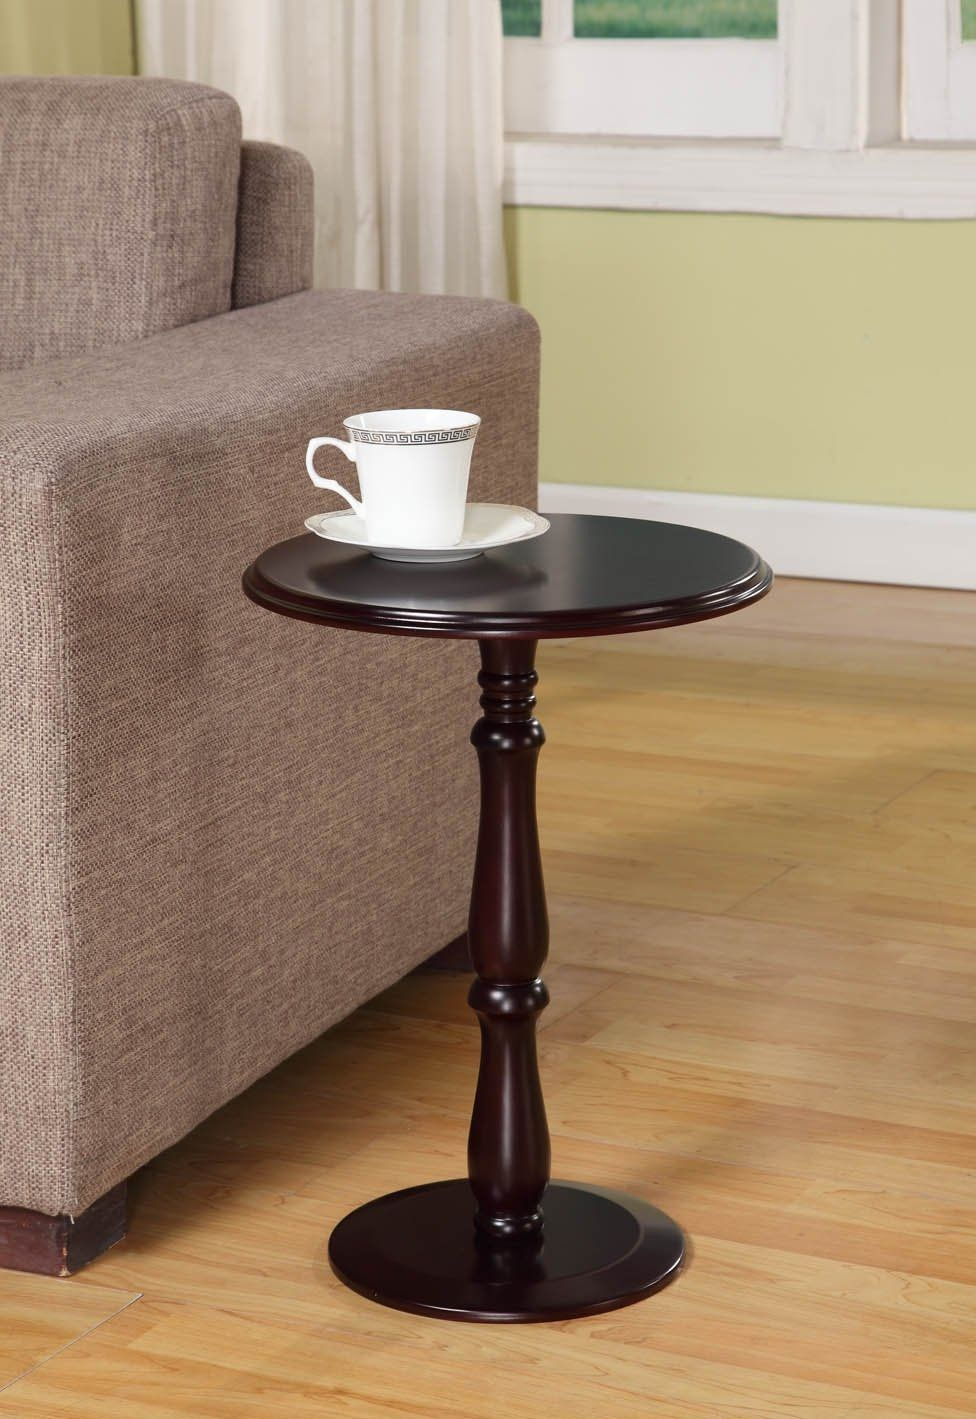 100 Small Round End Tables Best Office Furniture Check More At Http Livelylighting Com With Images Living Table Round Coffee Table Living Room Small Round Side Table